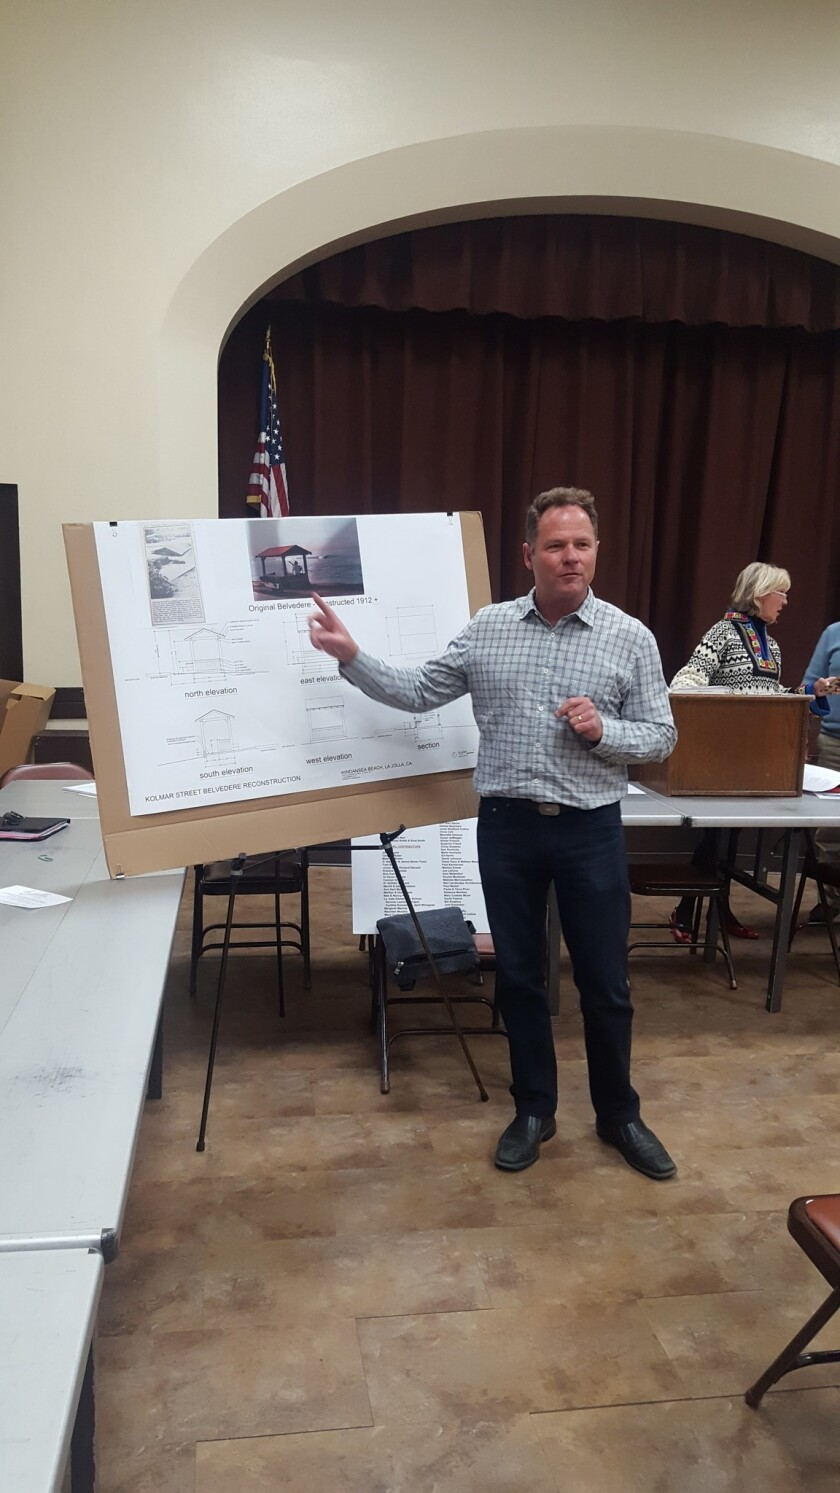 Jim Neri presents plans to replace a belvedere at Windansea Beach during a La Jolla Parks & Beaches meeting in December 2018.